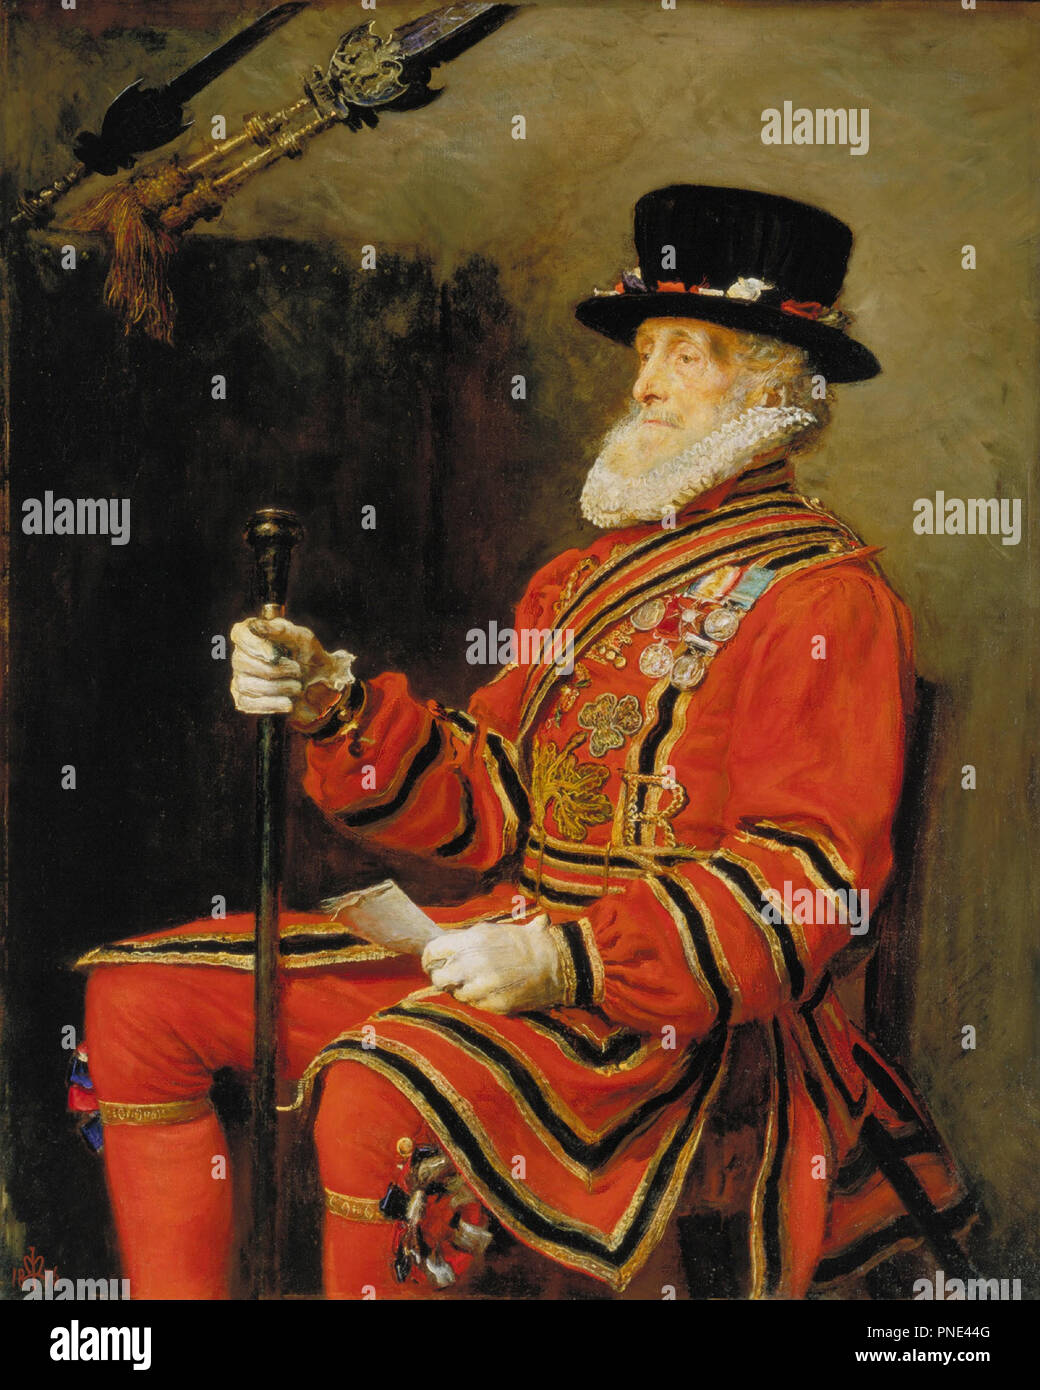 The Yeoman of the Guard. Date/Period: 1876. Painting. Oil on canvas. Height: 139.7 cm (55 in); Width: 111.8 cm (44 in). Author: JOHN EVERETT MILLAIS. MILLAIS, SIR JOHN EVERETT. Stock Photo